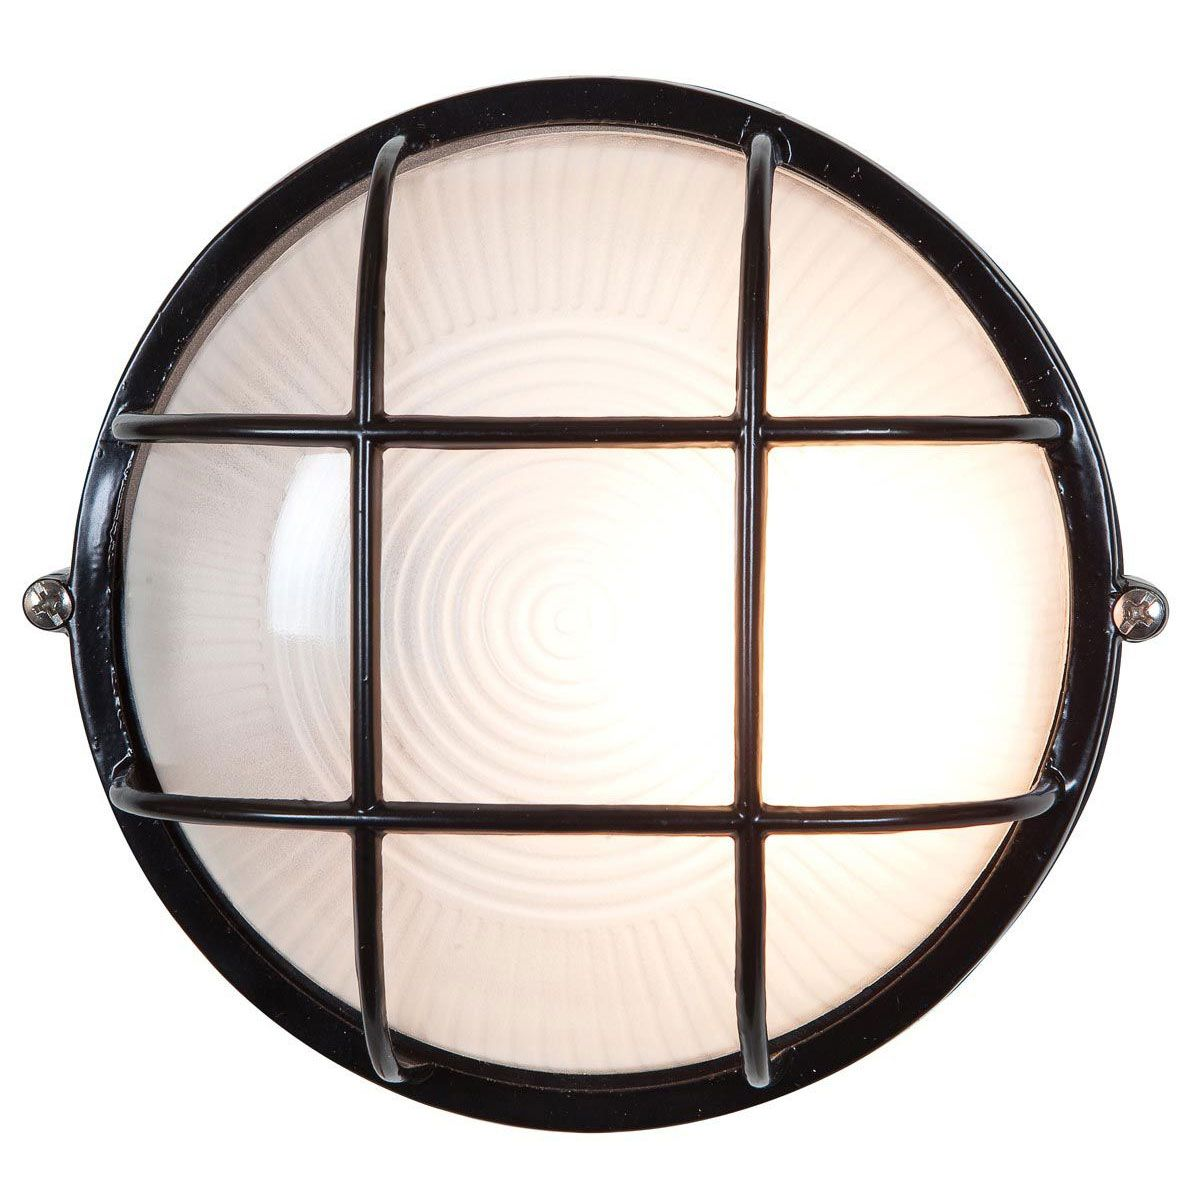 Nauticus round outdoor bulkhead wall sconce features frosted glass